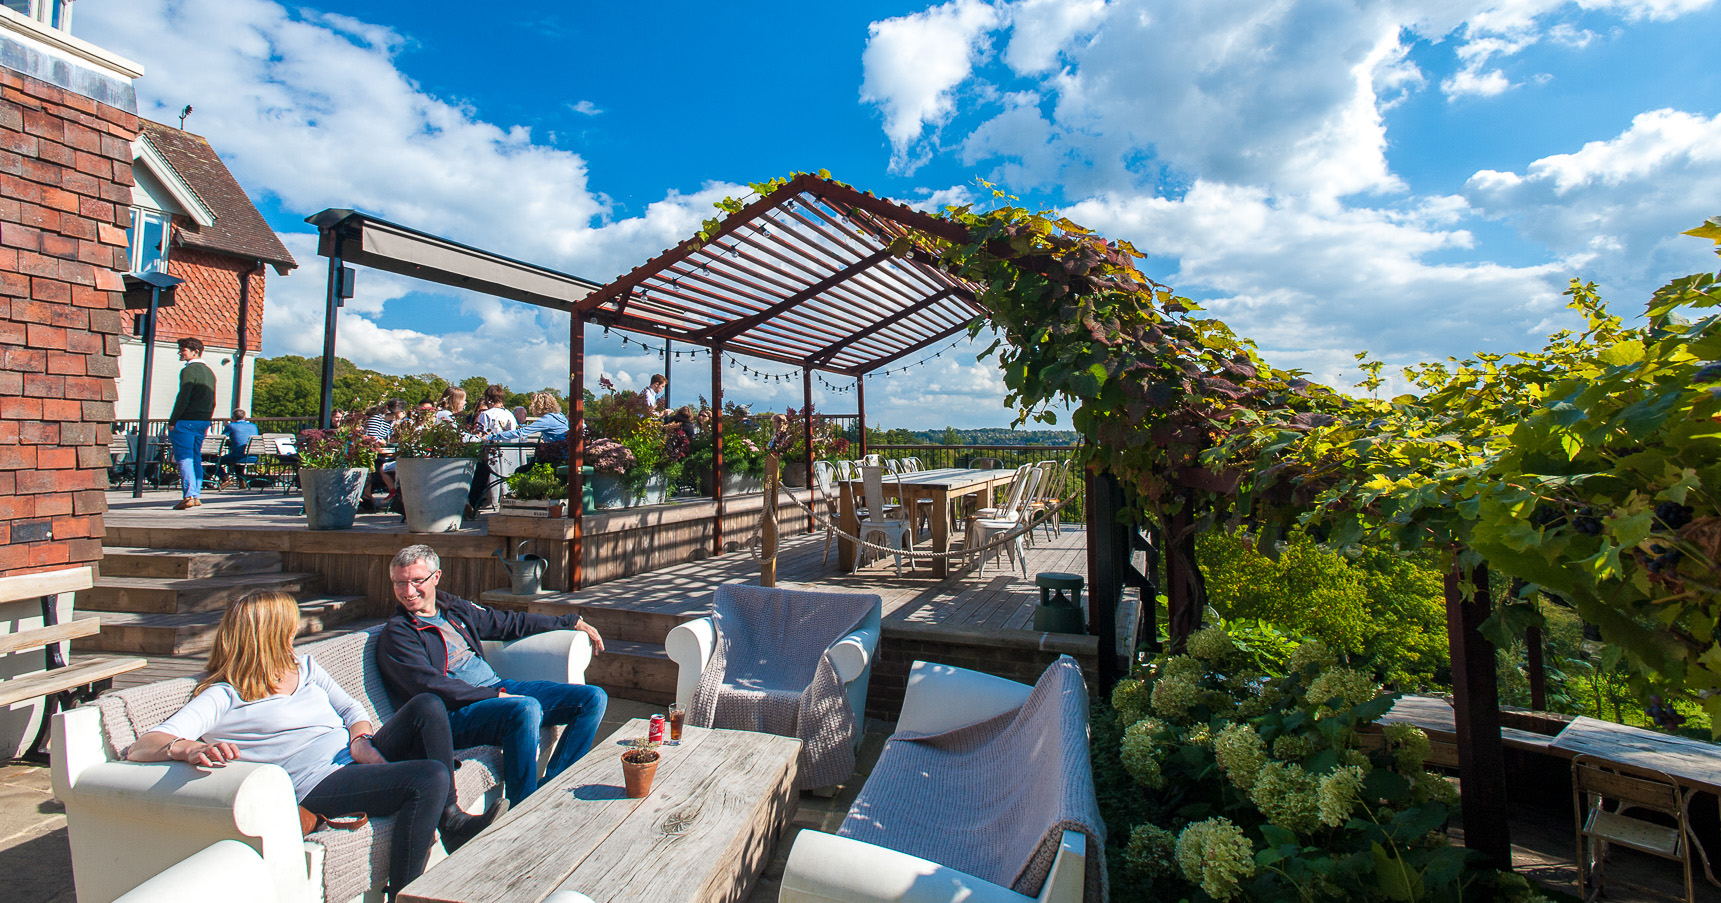 The Beacon restaurant with terrace and views, near Royal Tunbridge Wells